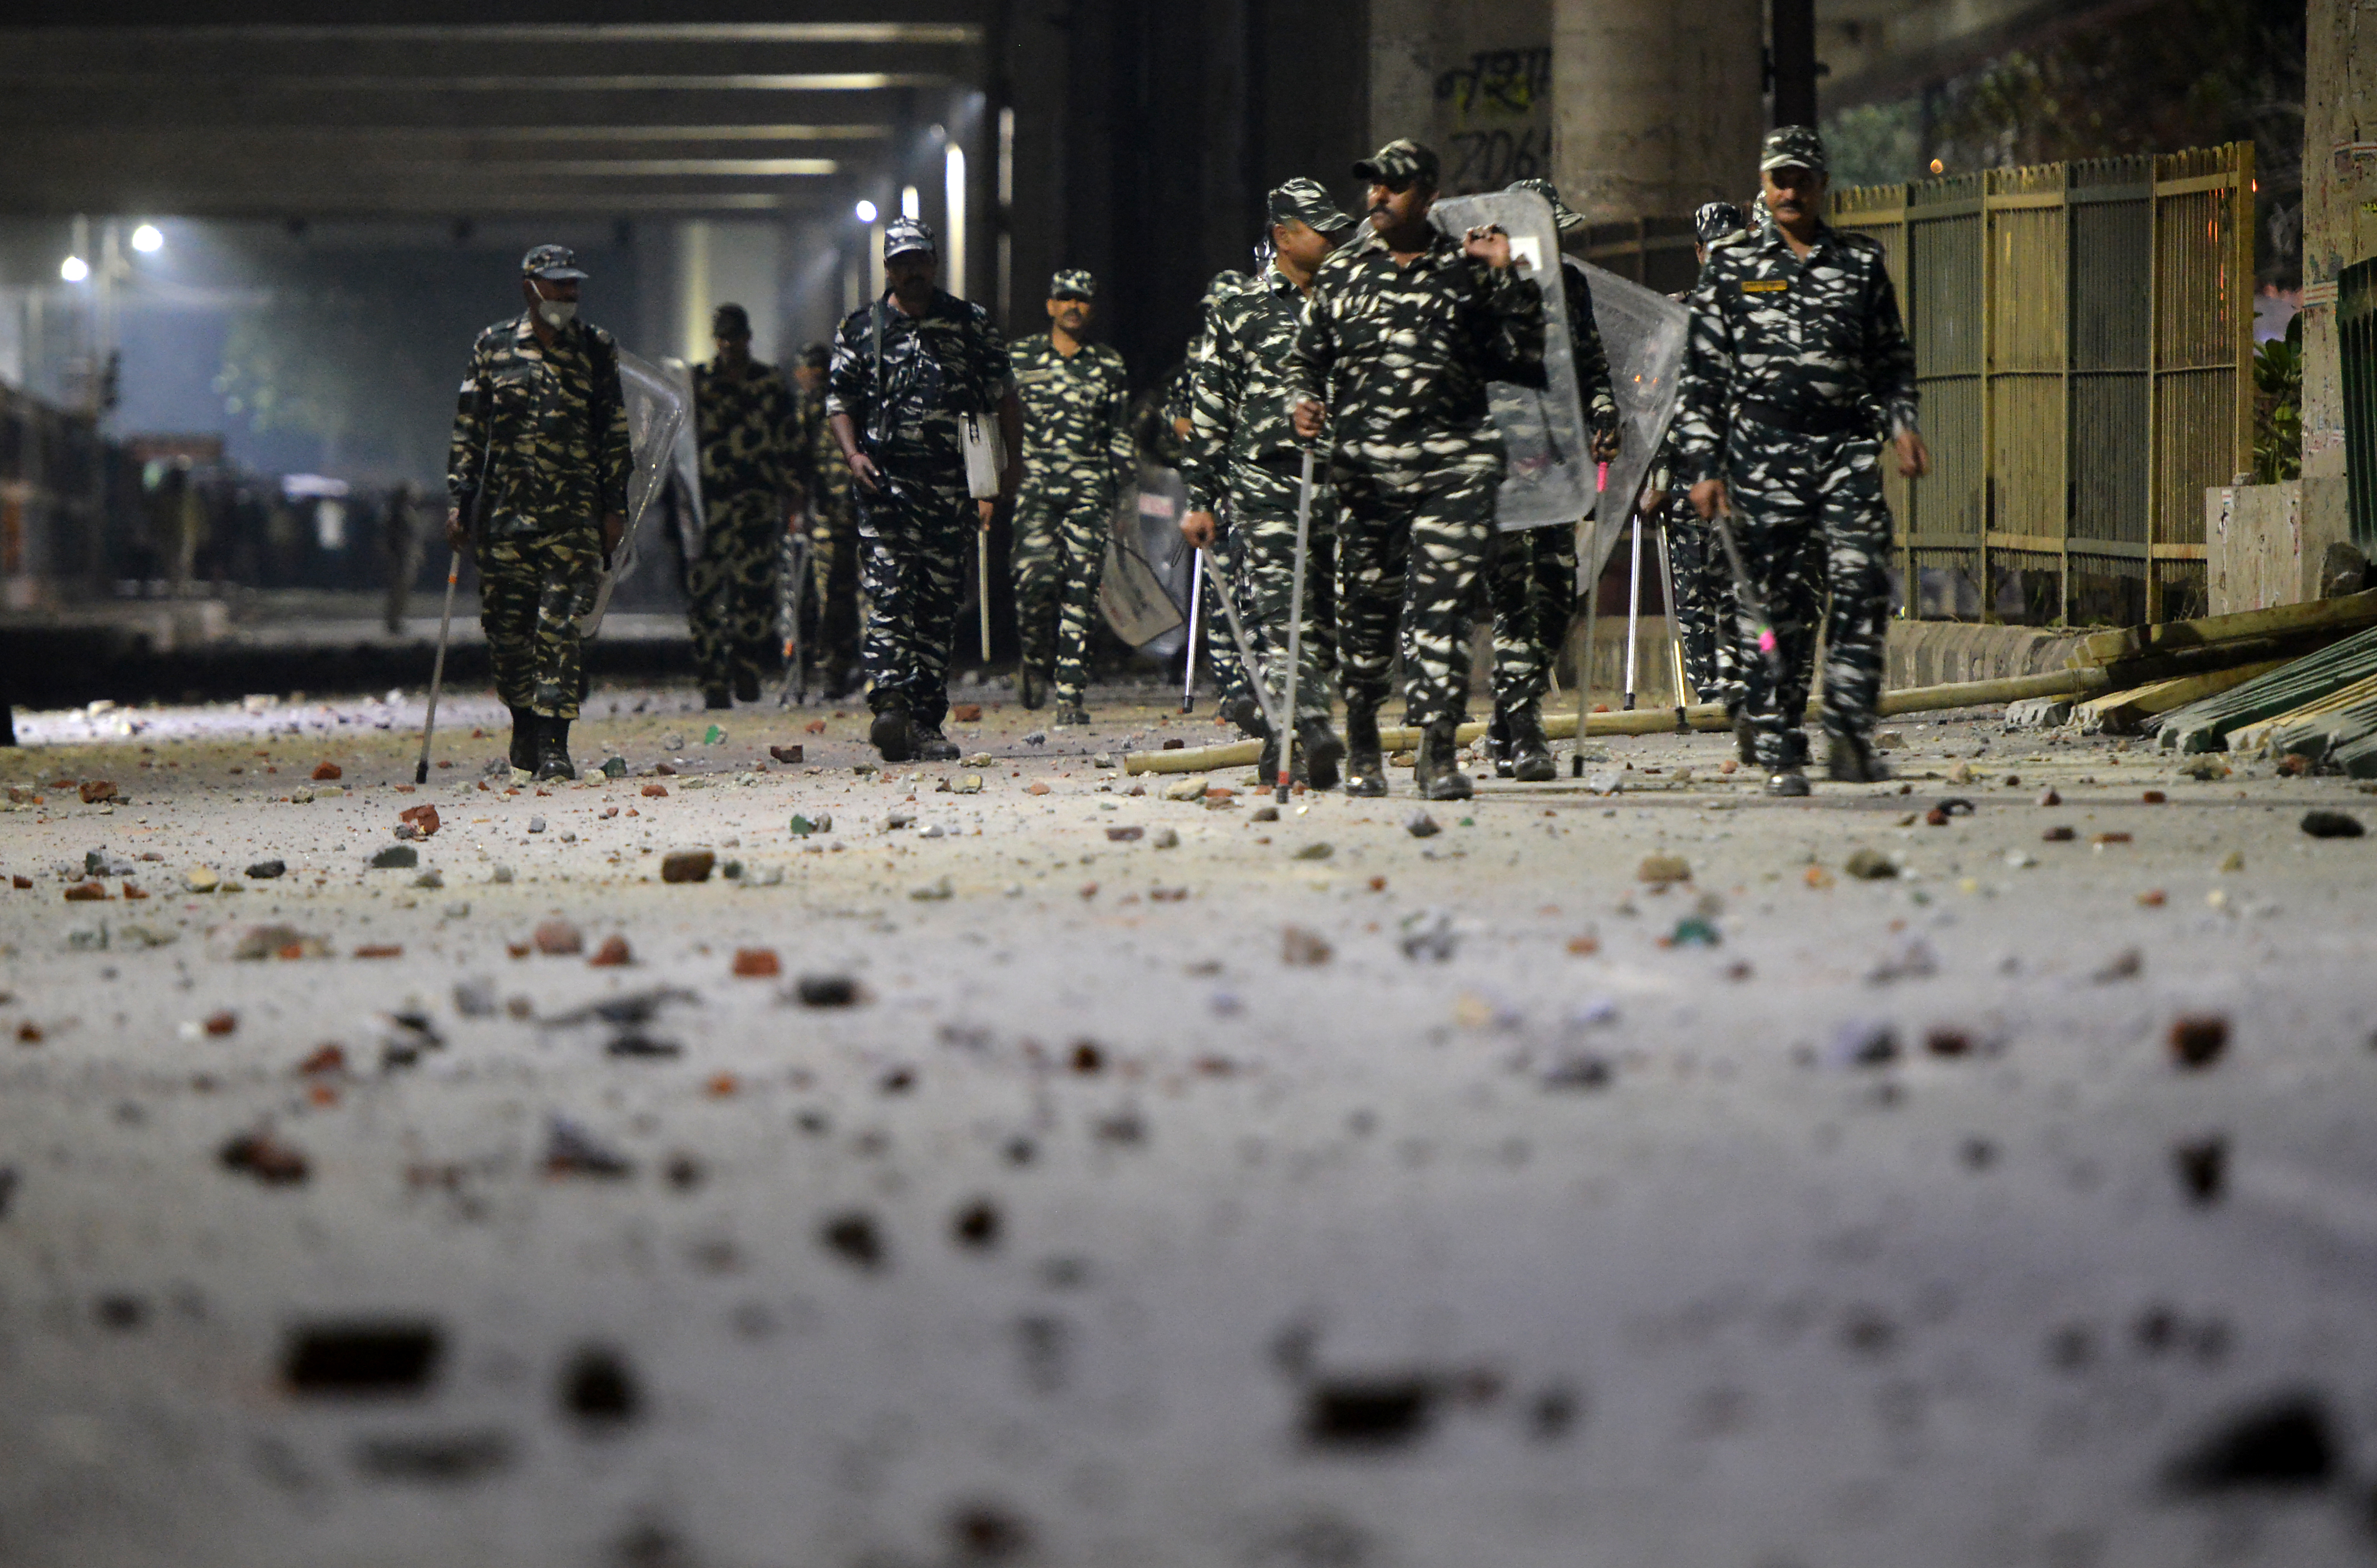 Clashes broke out between anti CAA and pro CAA in Maujpur, New Delhi, on Monday.